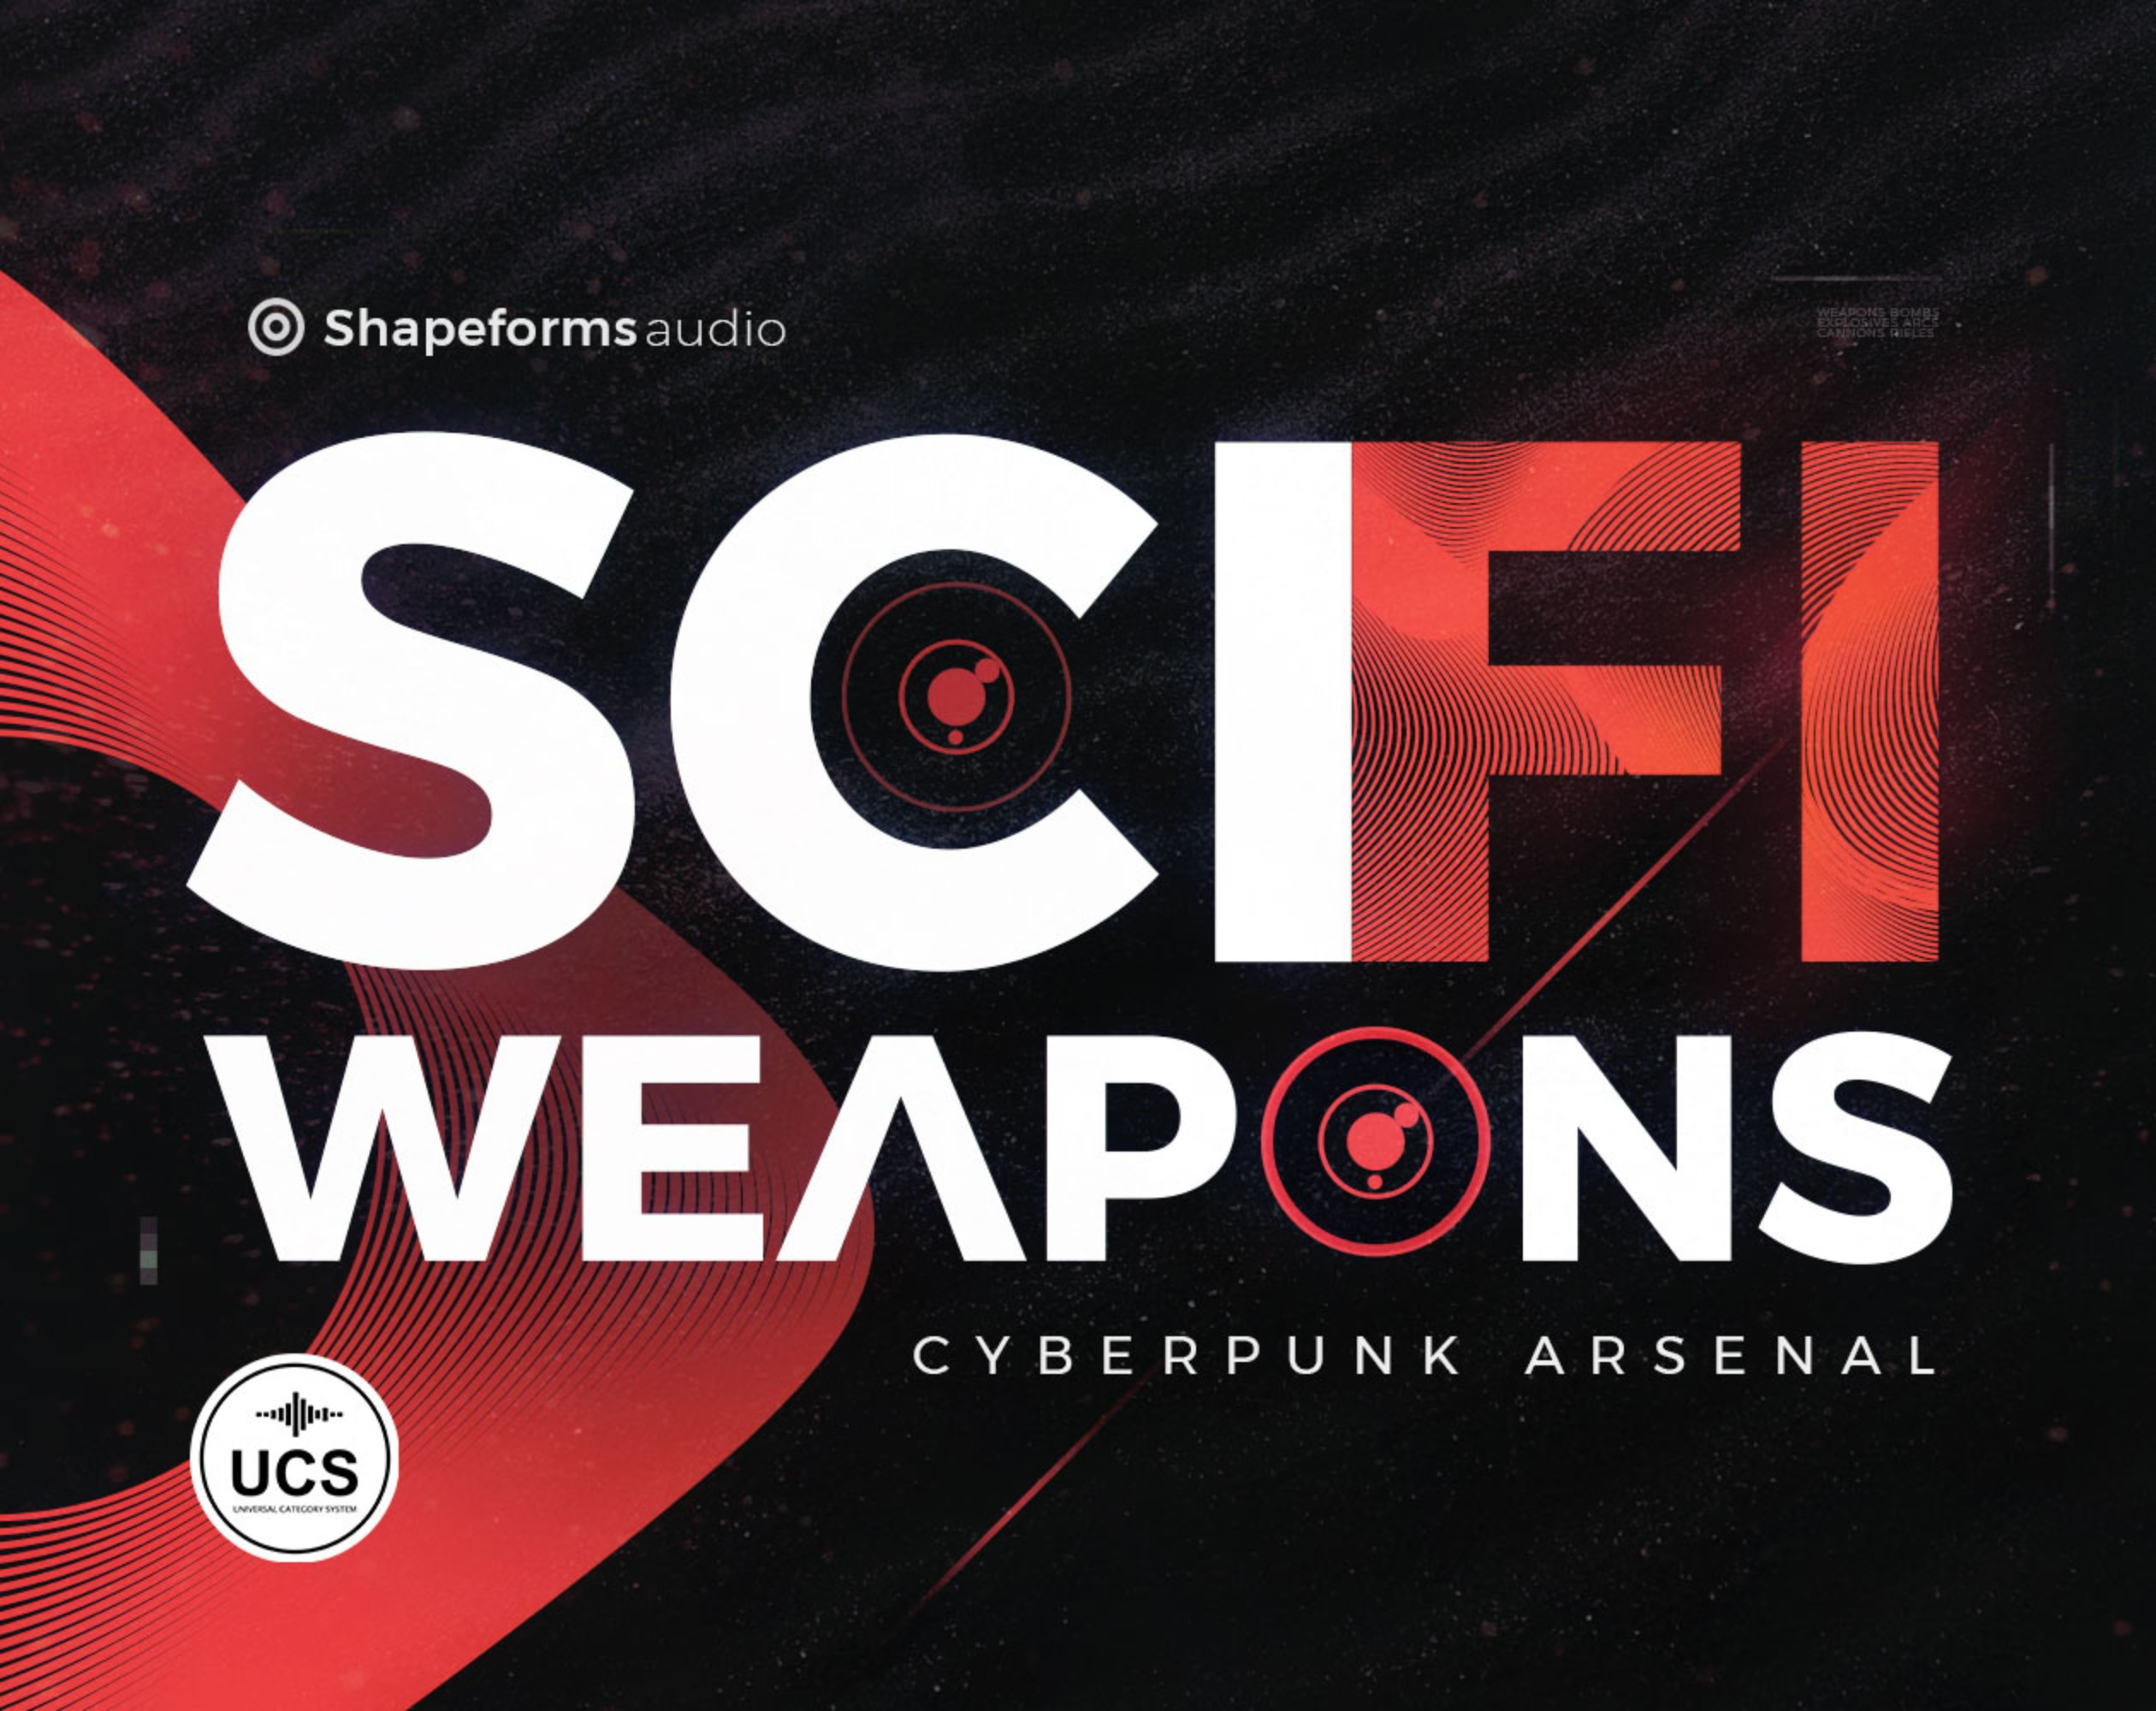 Sci Fi Weapons: Cyberpunk Arsenal